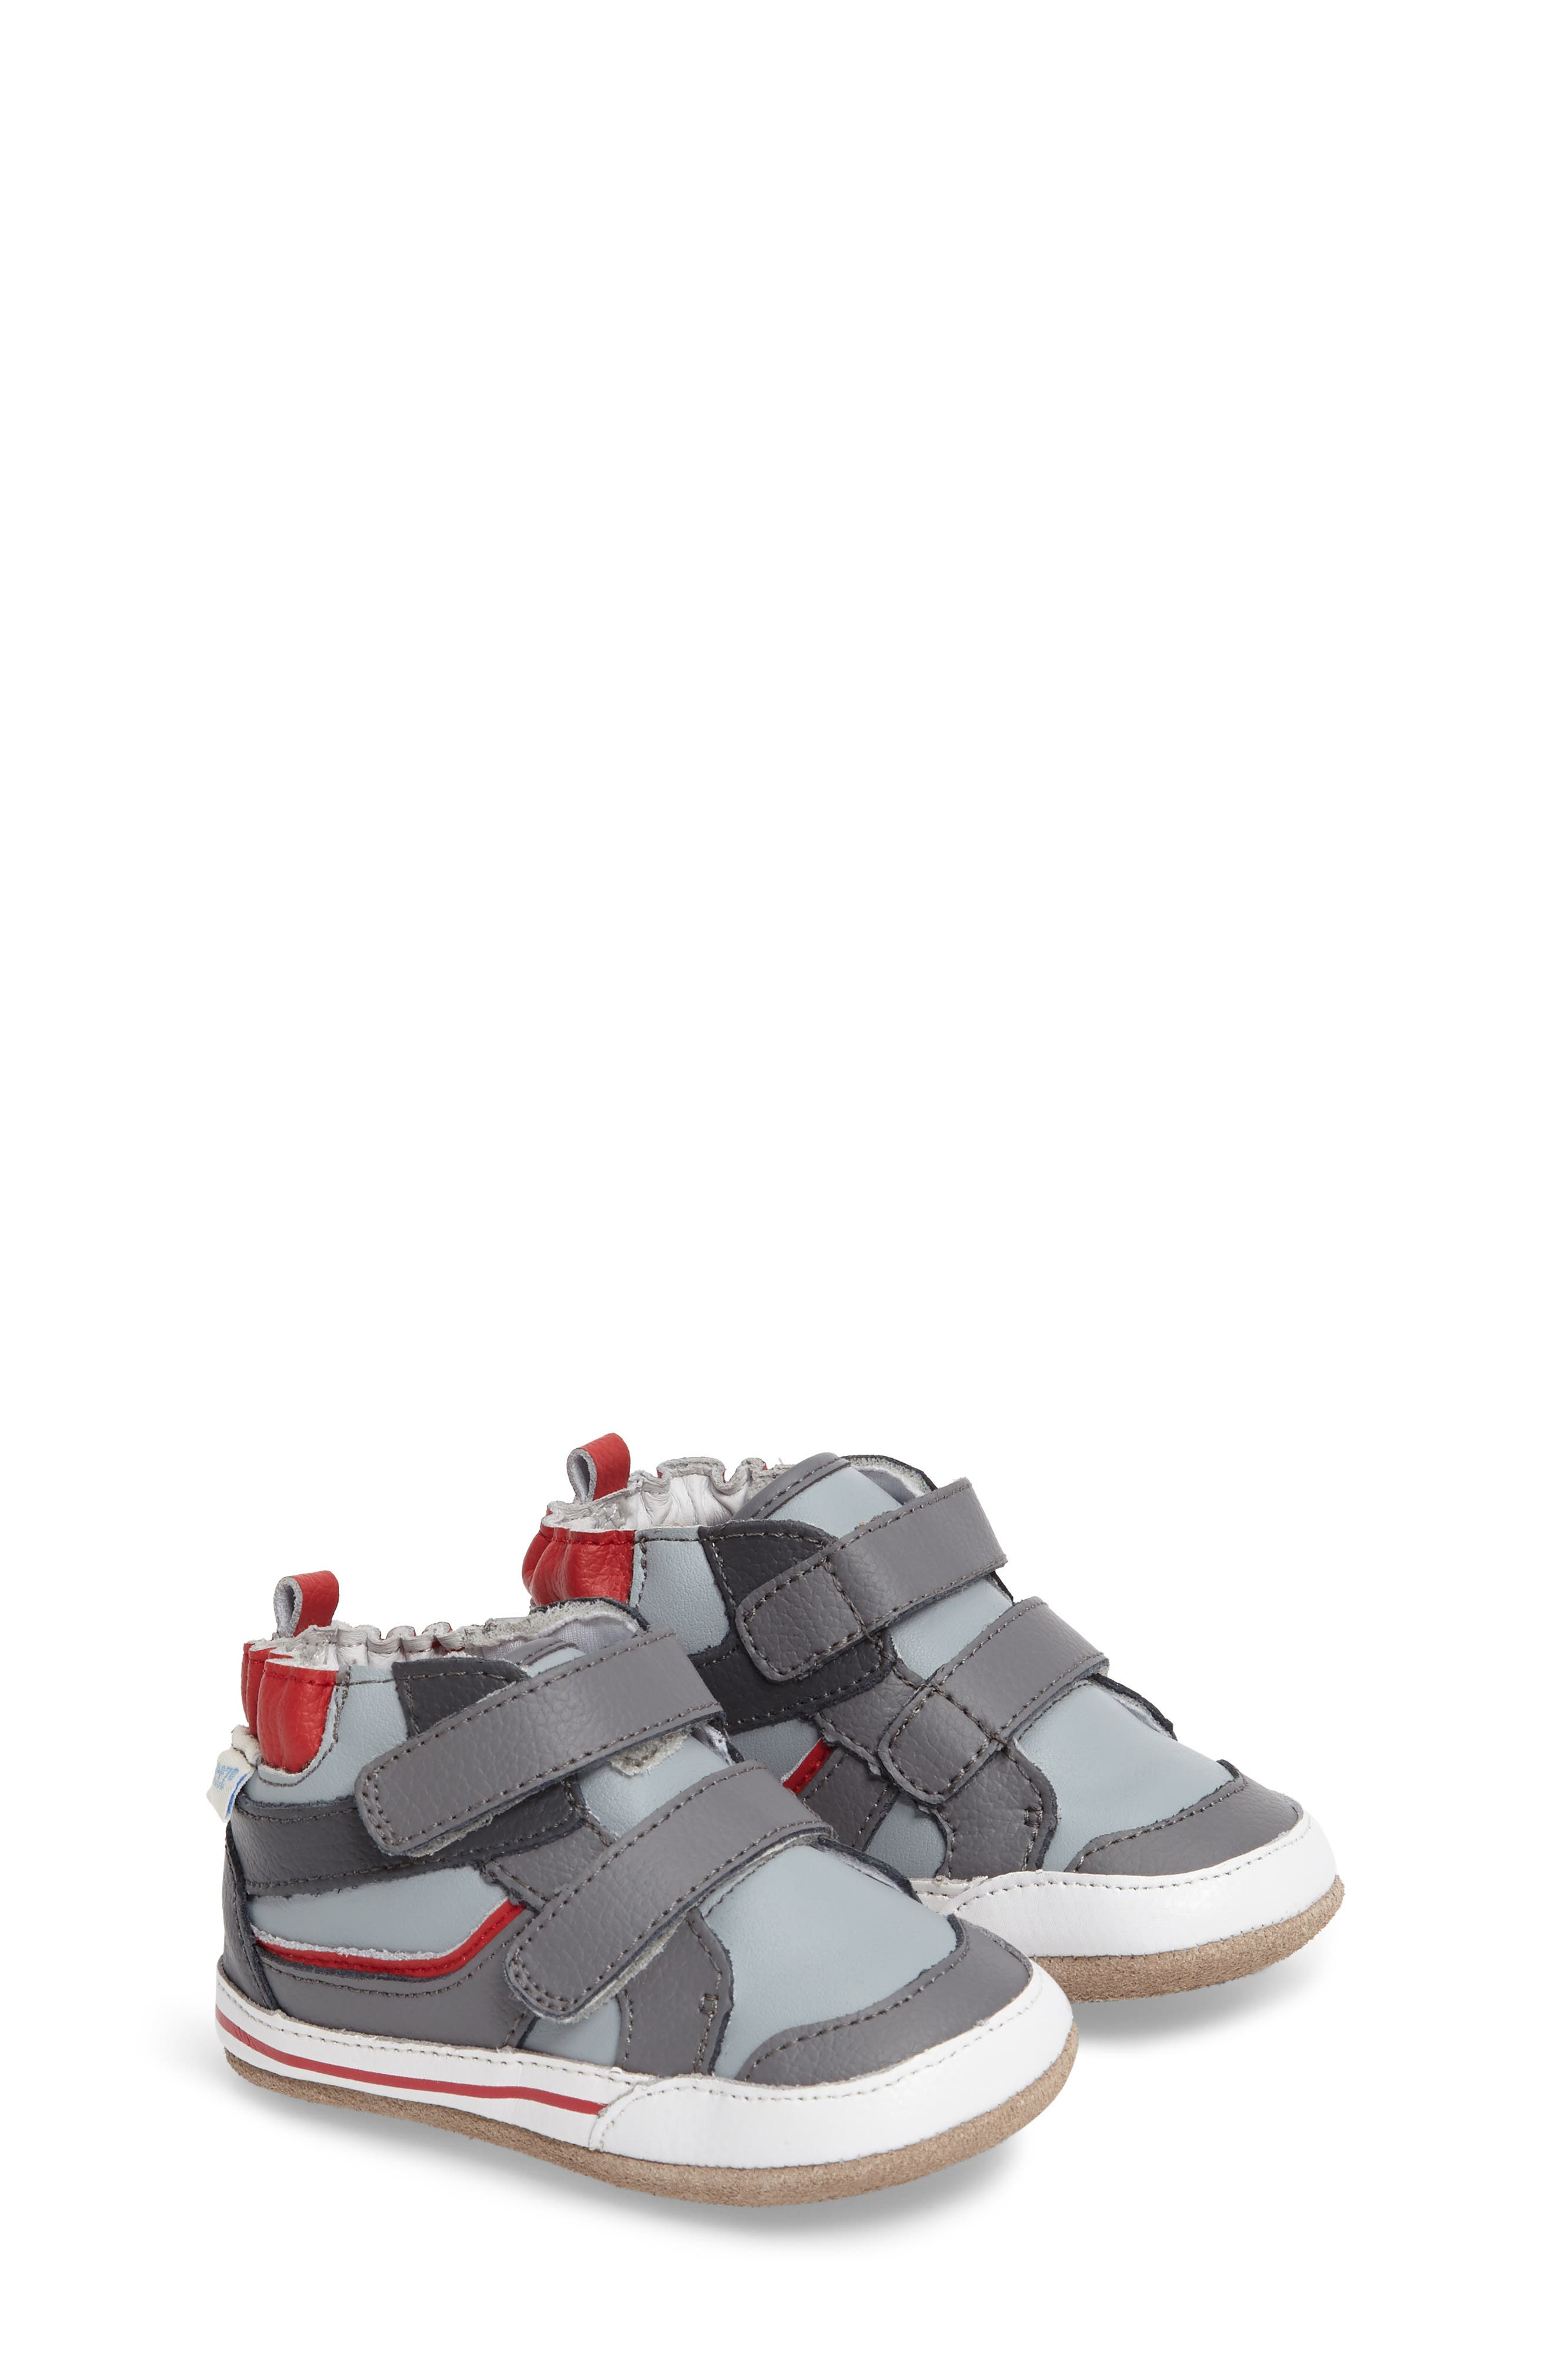 Greg Crib Shoe,                         Main,                         color, Grey